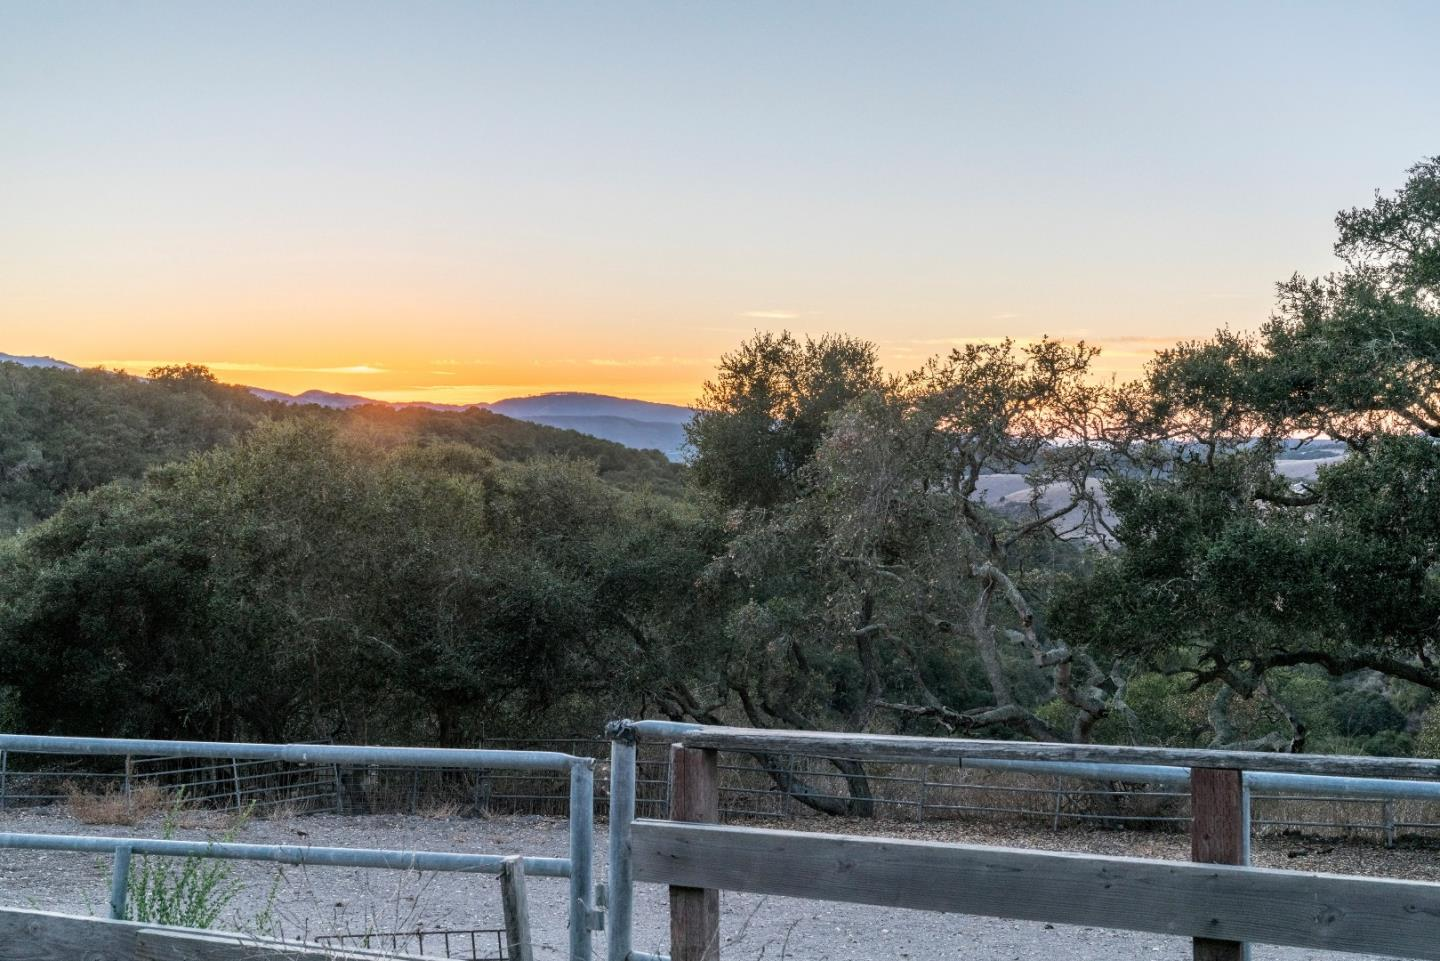 Property for sale at 27104 Laureles Grade RD, Carmel Valley,  CA 93924